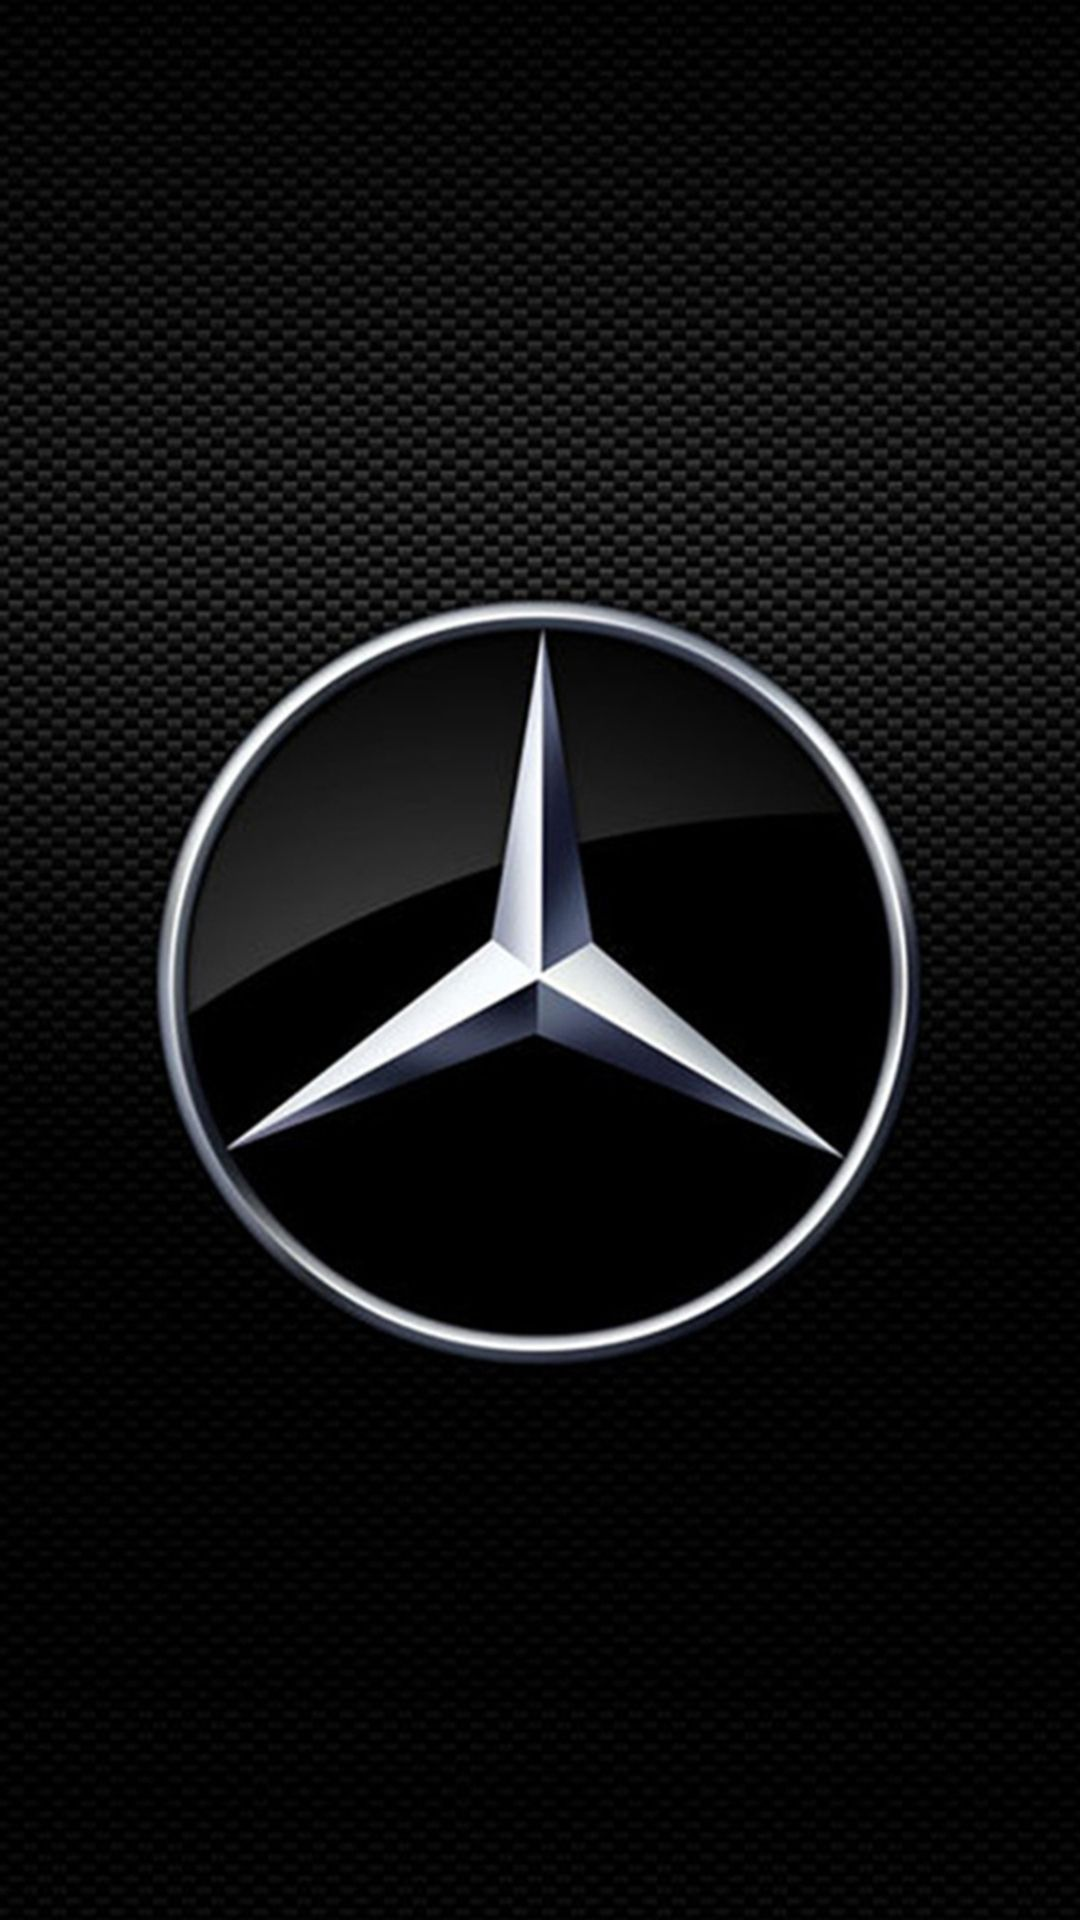 Mercedes Benz Symbol The Ultimate Symbol Of Quality Luxury And